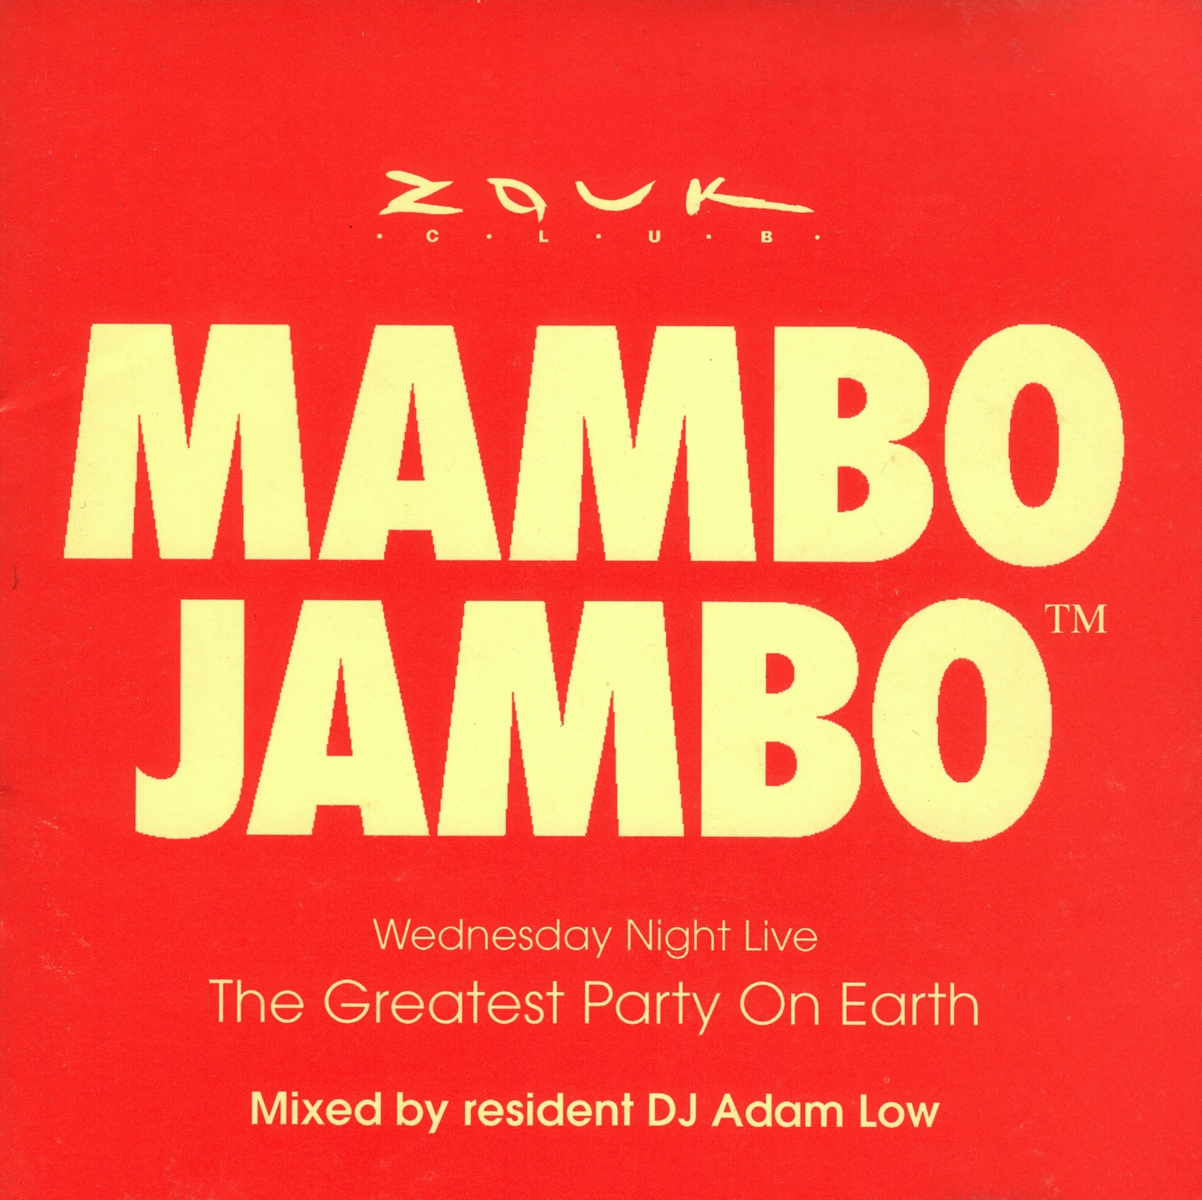 Zouk Club Mambo Jambo - Wednesday Night Live, Greatest Party On Earth